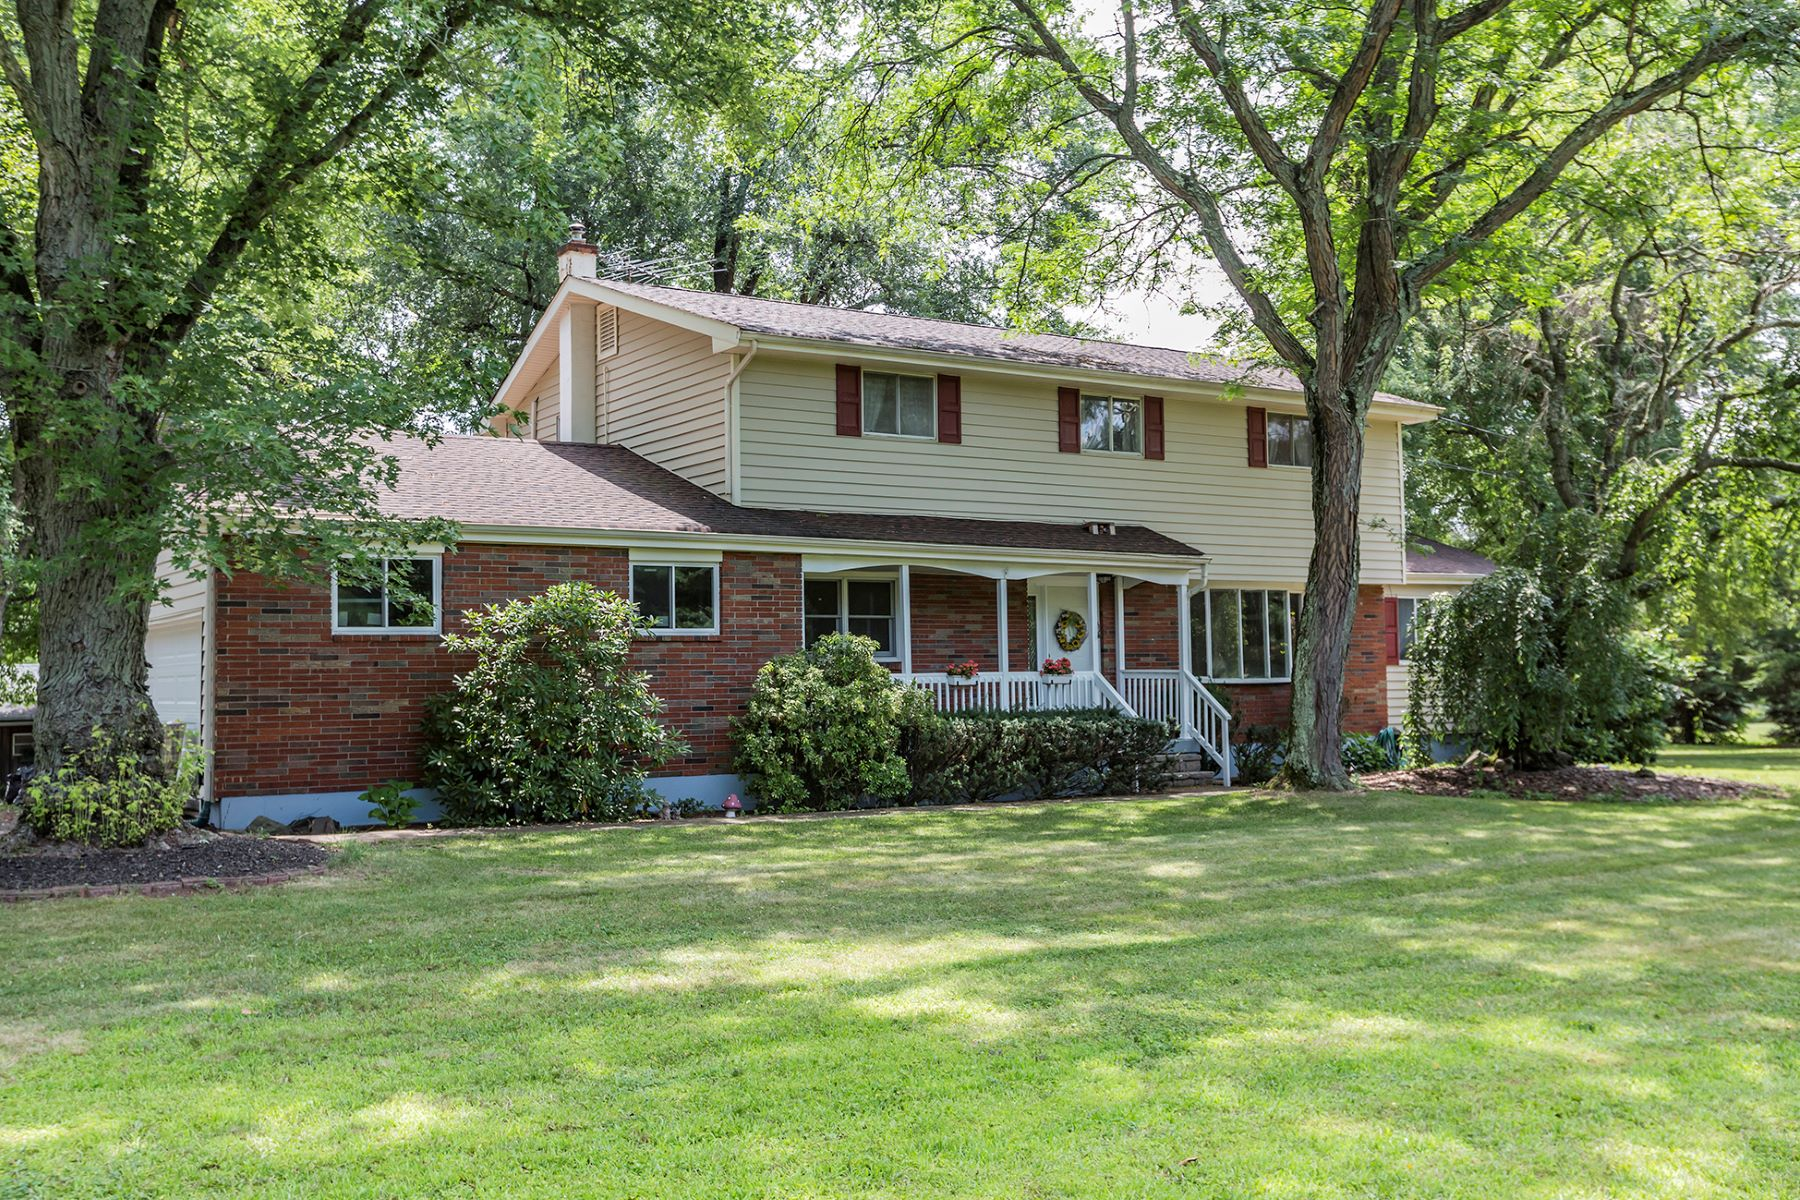 Single Family Home for Sale at Sure To Surprise And Delight - East Amwell Township 50 Rainbow Hill Road Flemington, 08822 United States